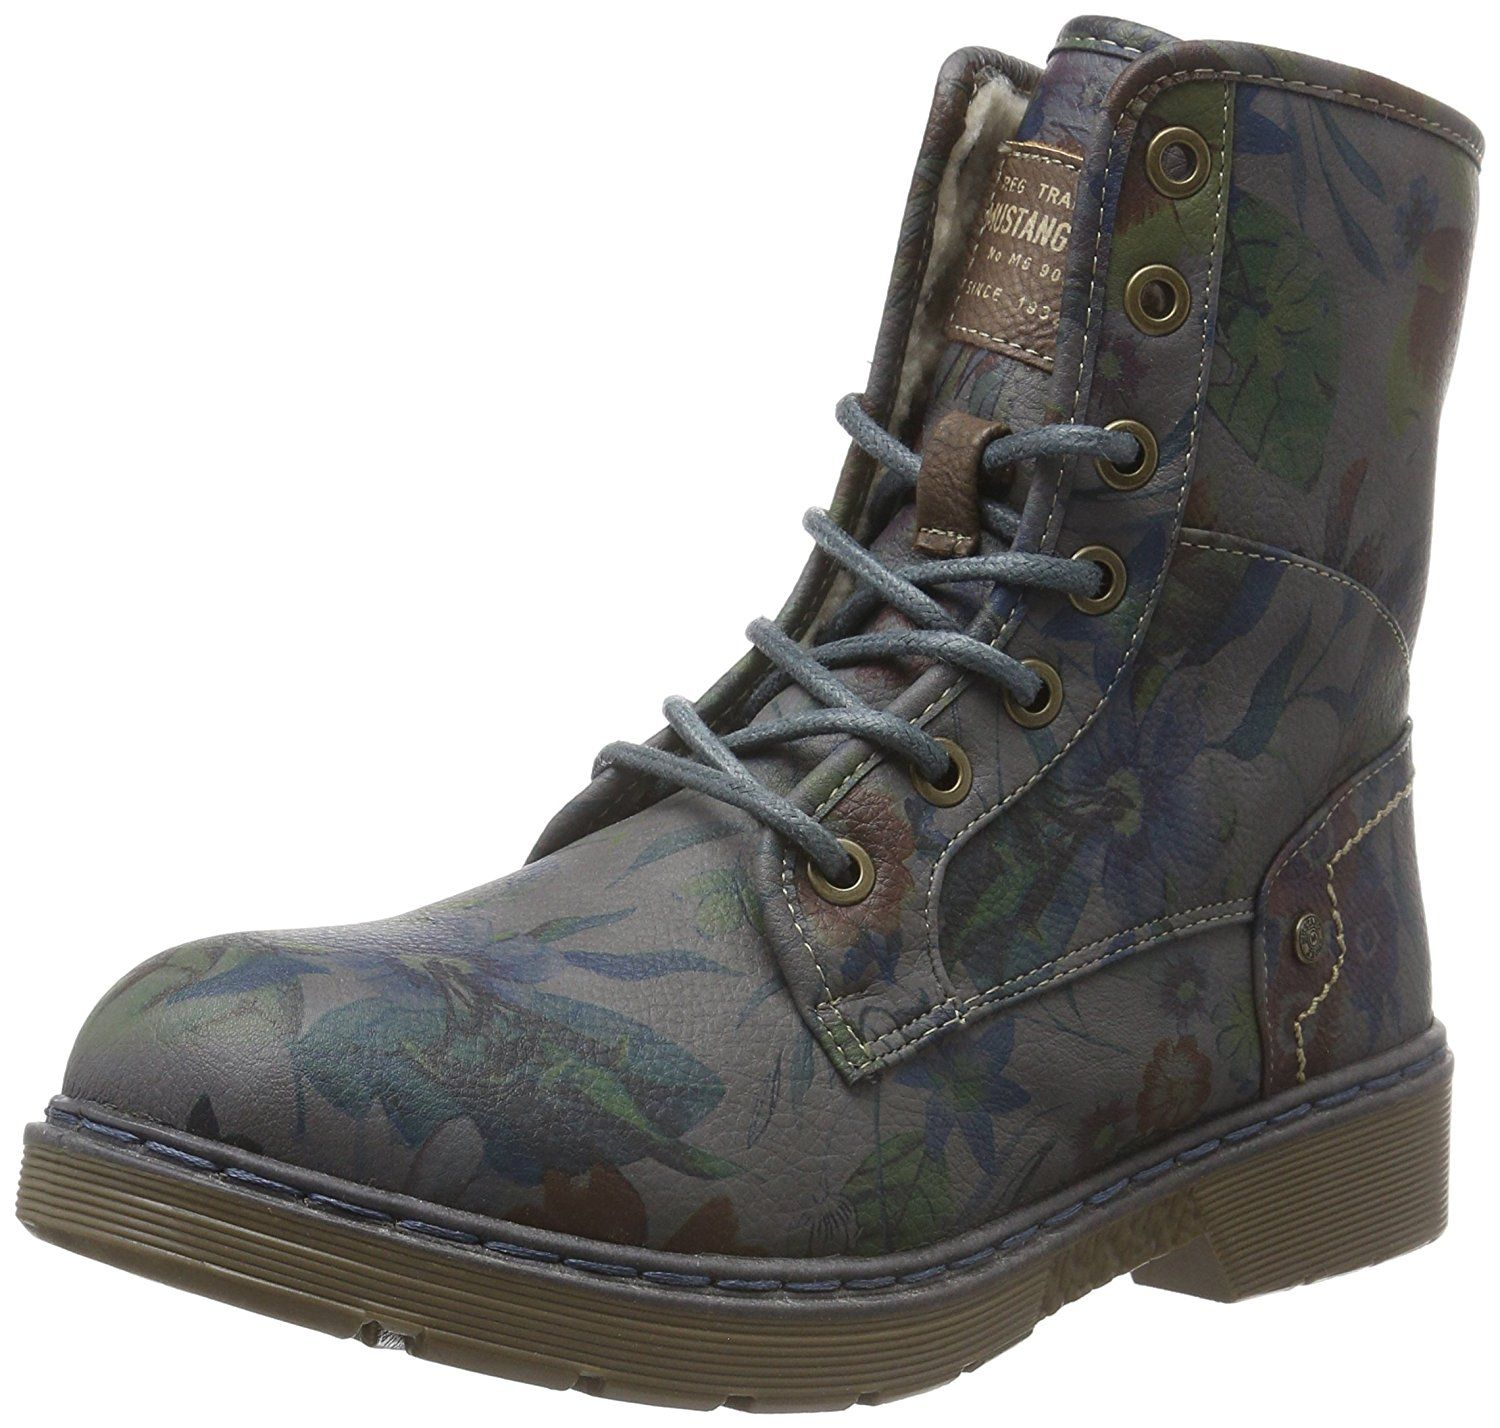 1207601, Womens Boots Mustang